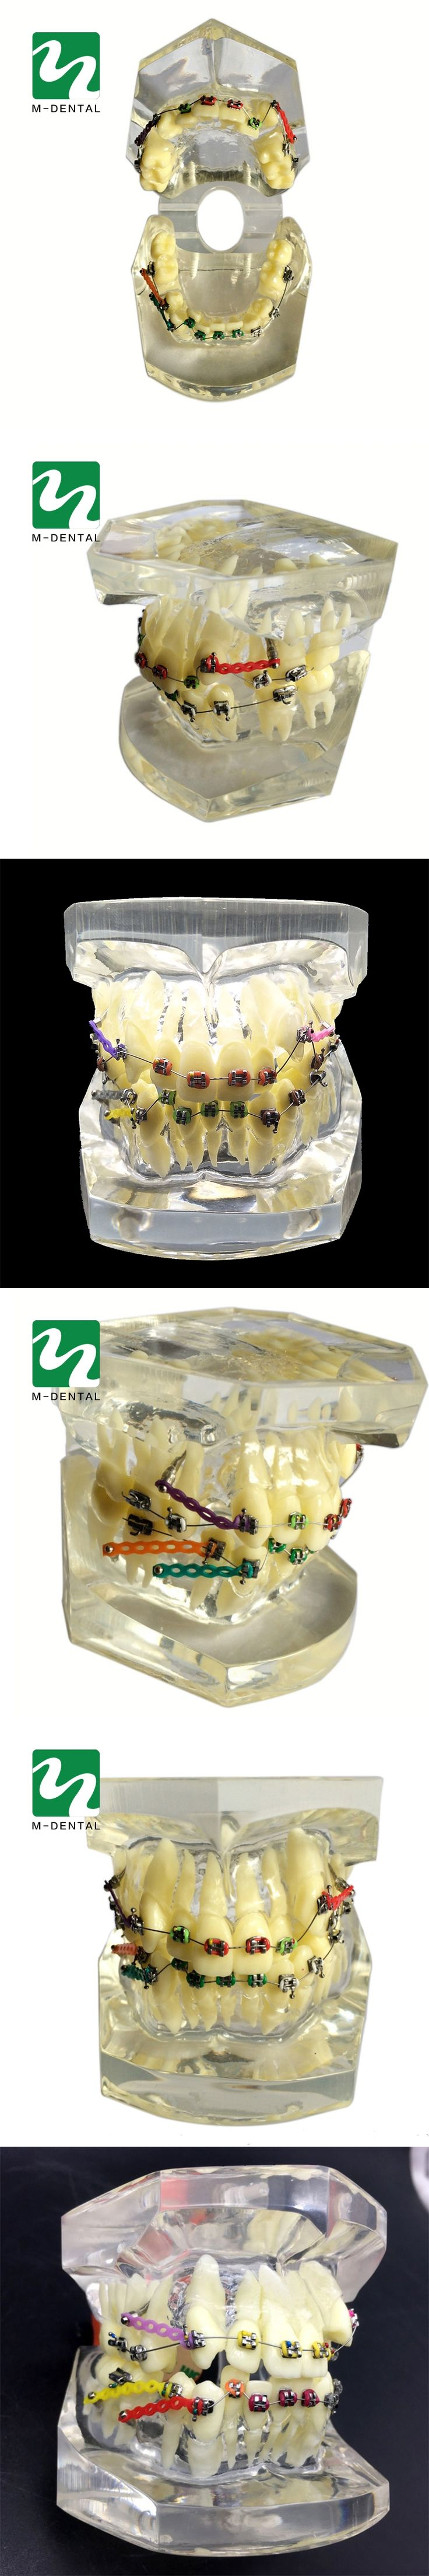 1PC Dental Orthodontic Study Model Transparent Teeth Malocclusion Orthodontic Model With Colorful Brackets&Hot Sale for Teaching